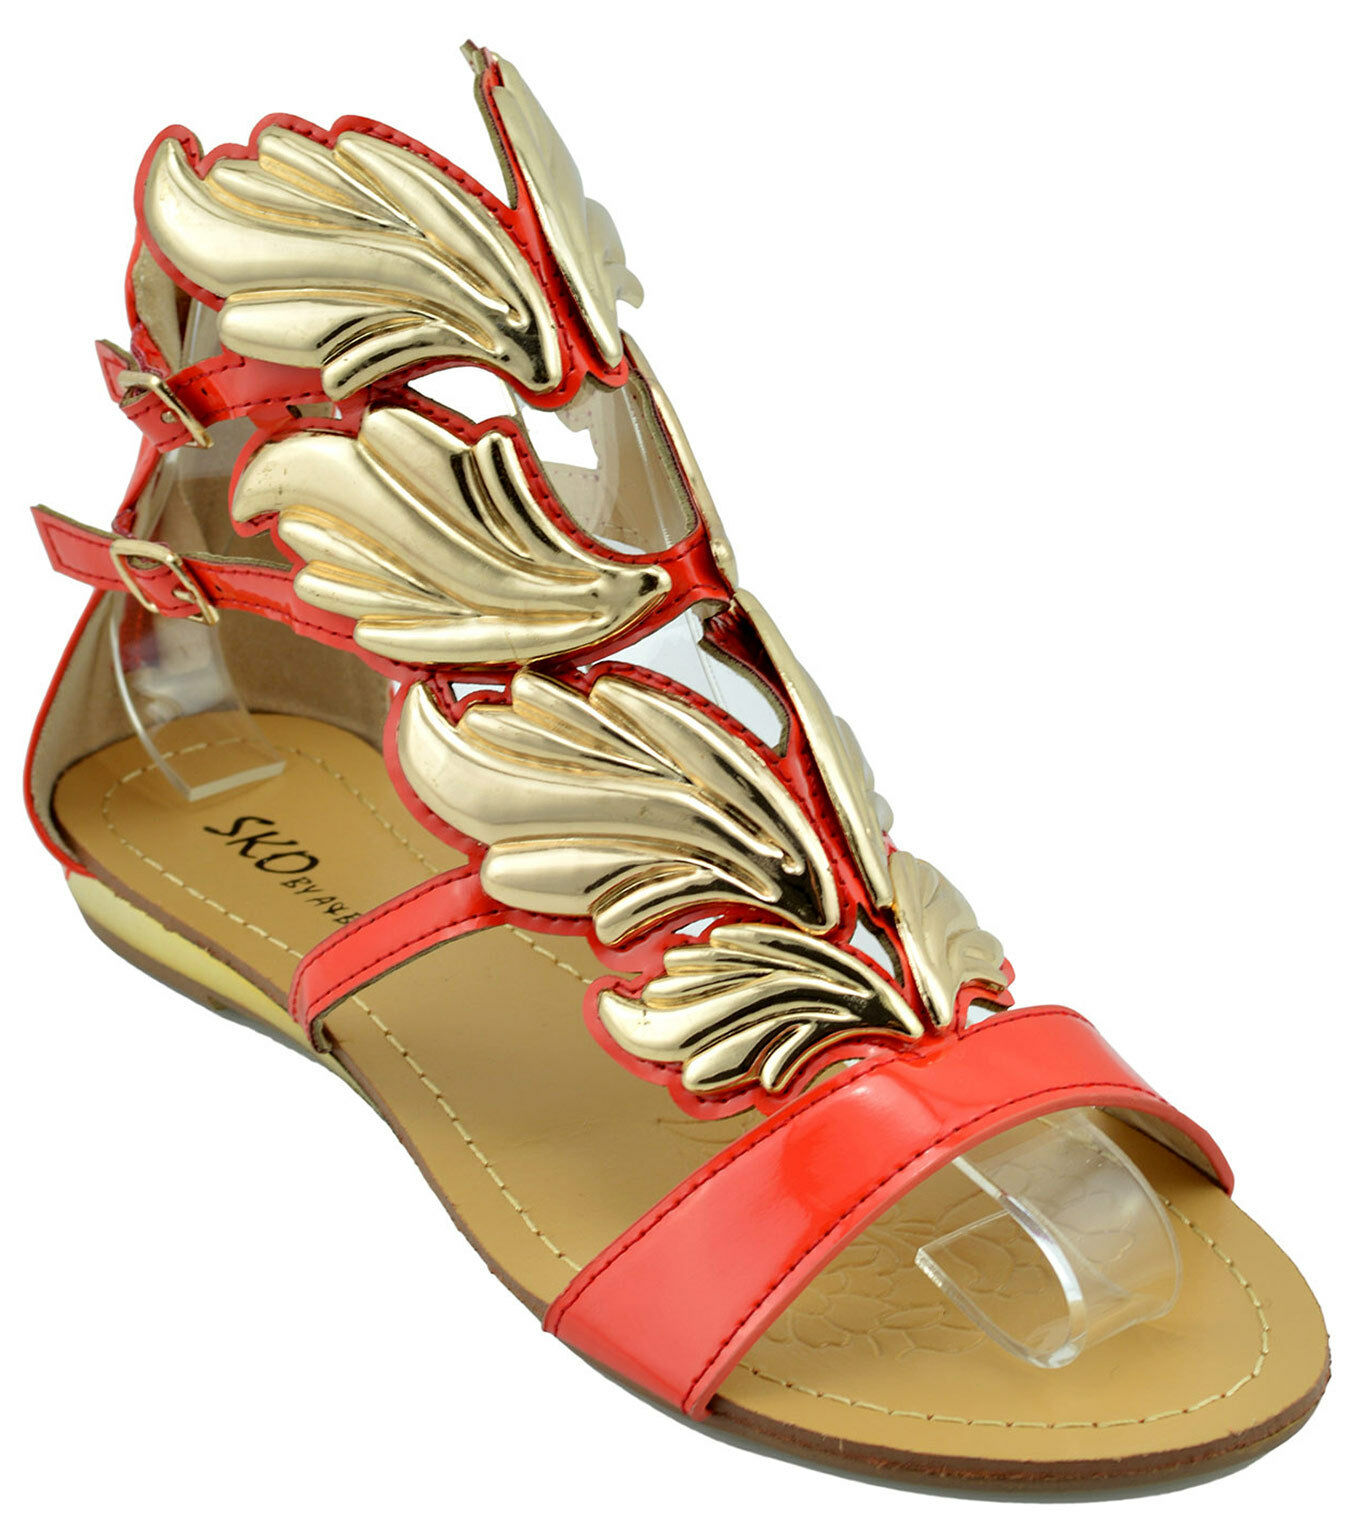 120 Red gold HERMES WINGS Fashion Women shoes Sandals Flats NEW COLLECTION